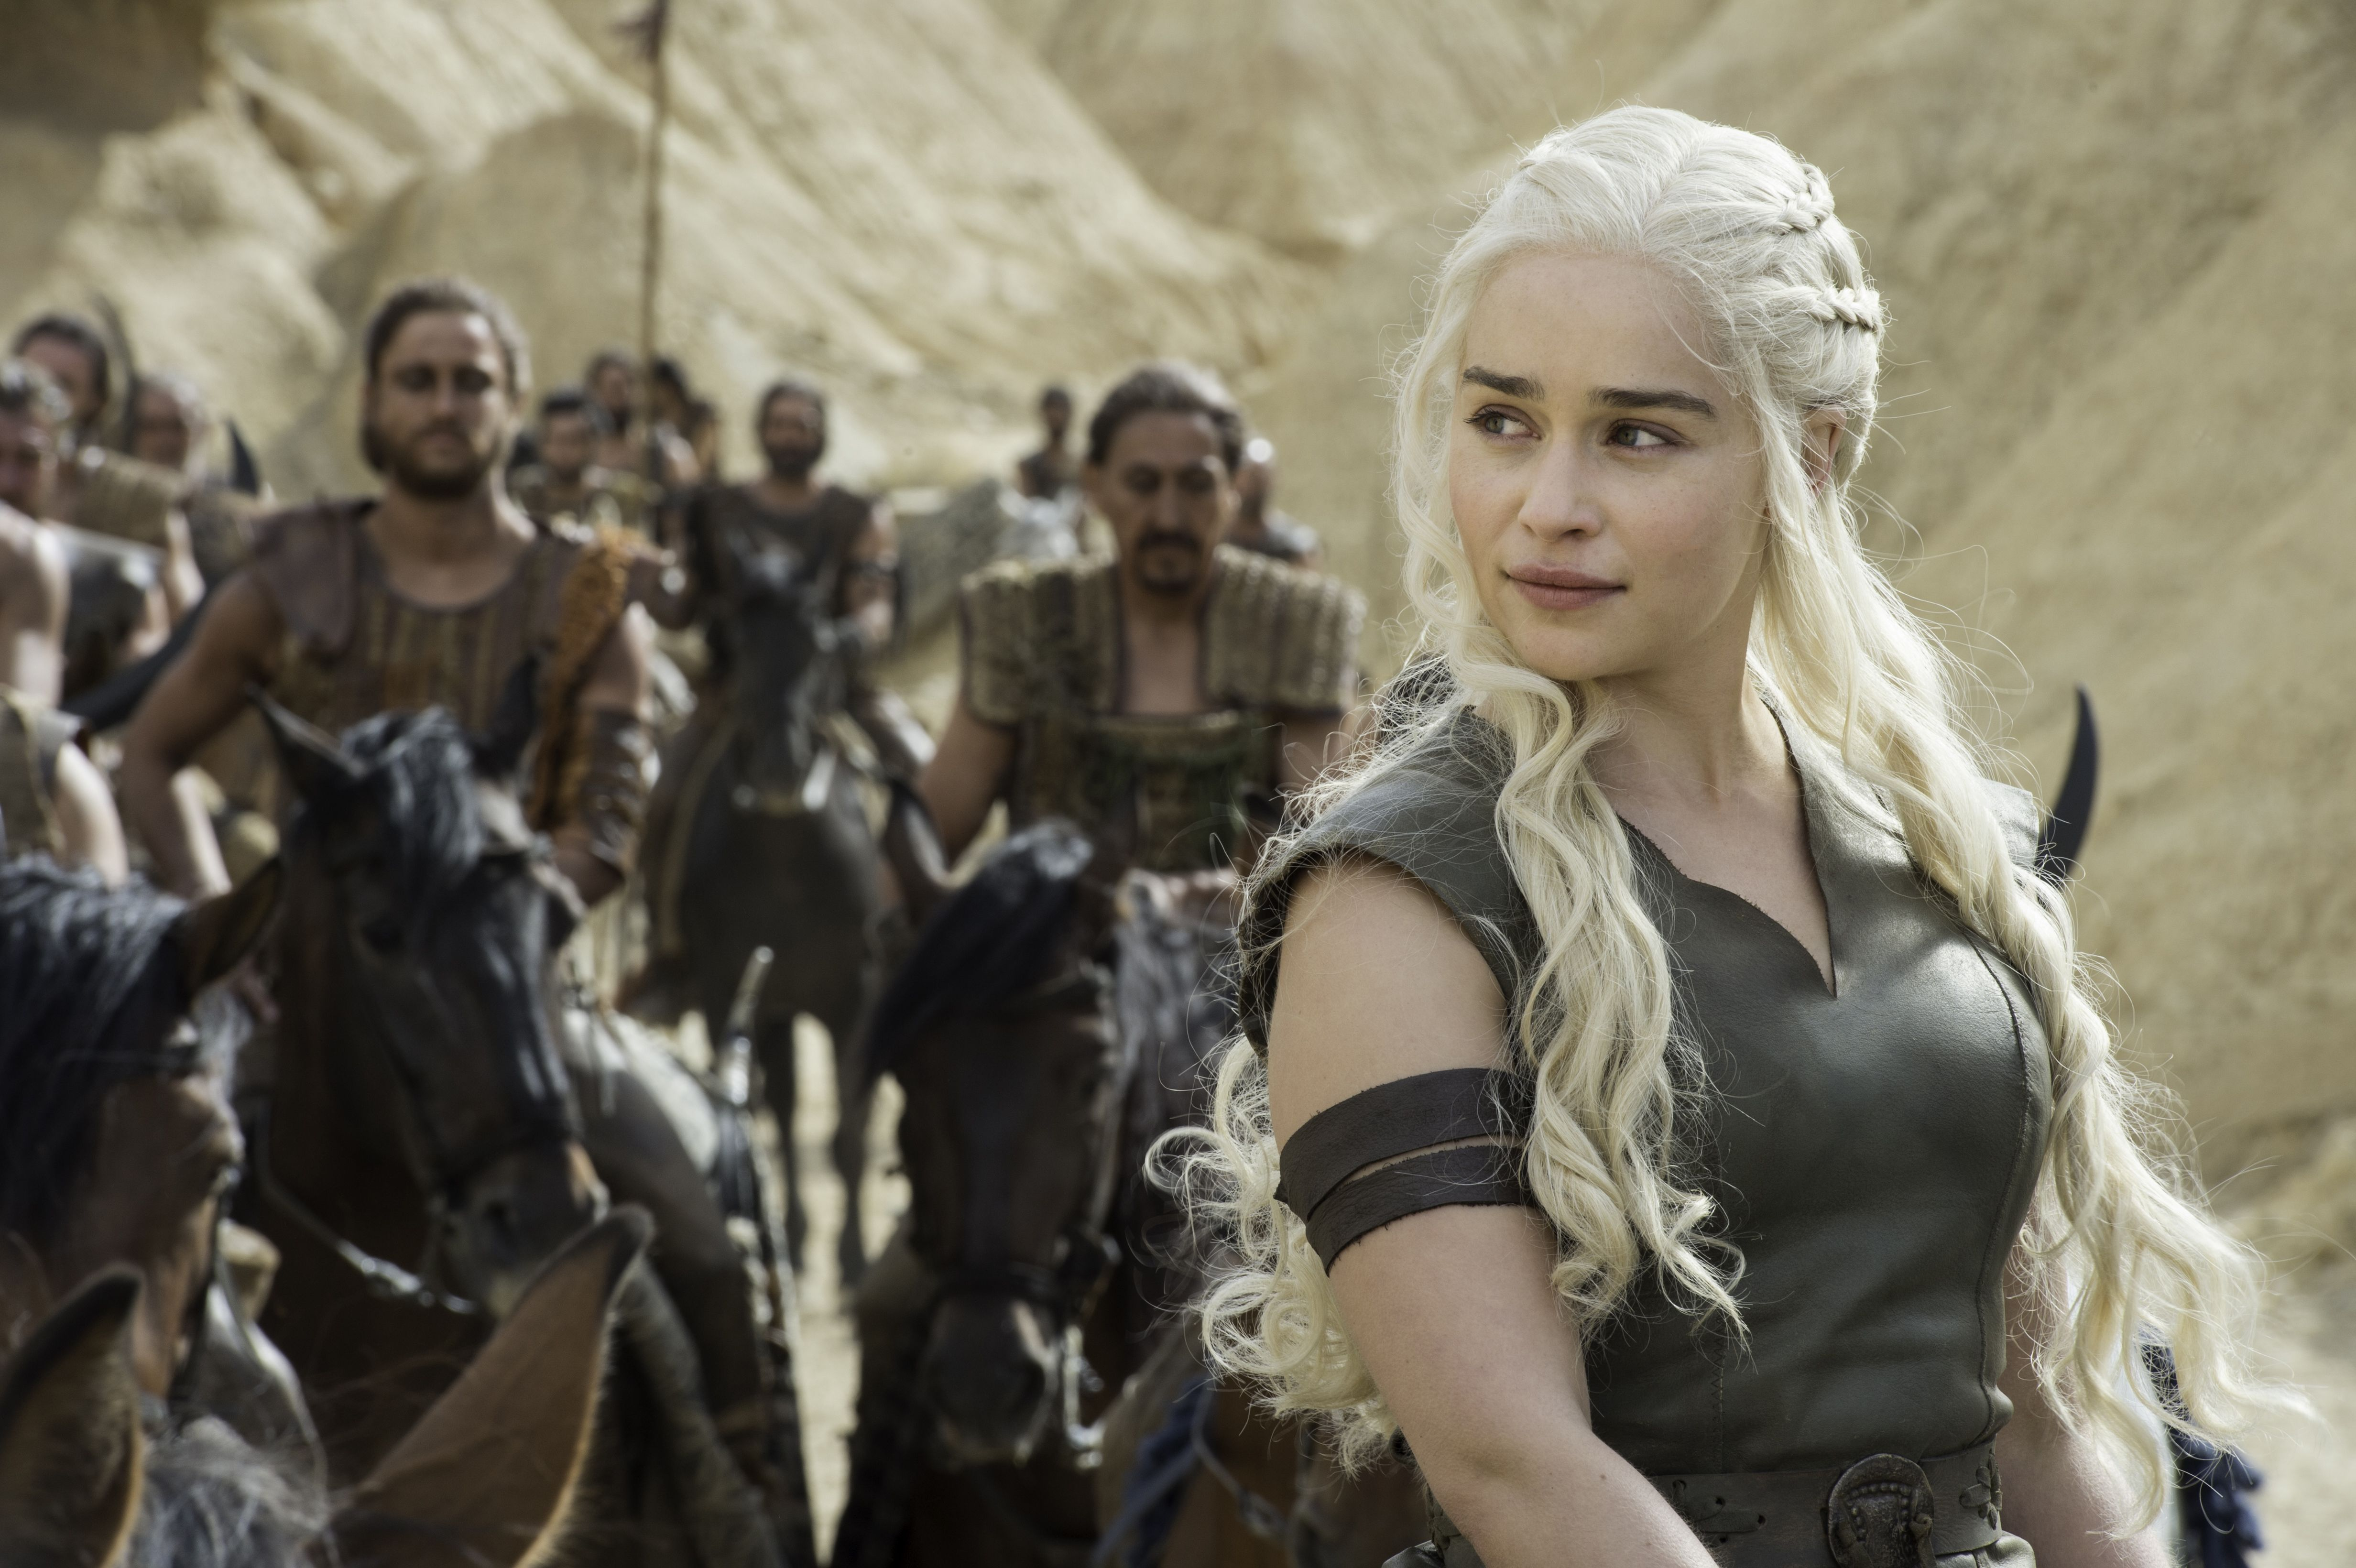 [TV] Baby Names Inspired by Game of Thrones Rising Since 2011